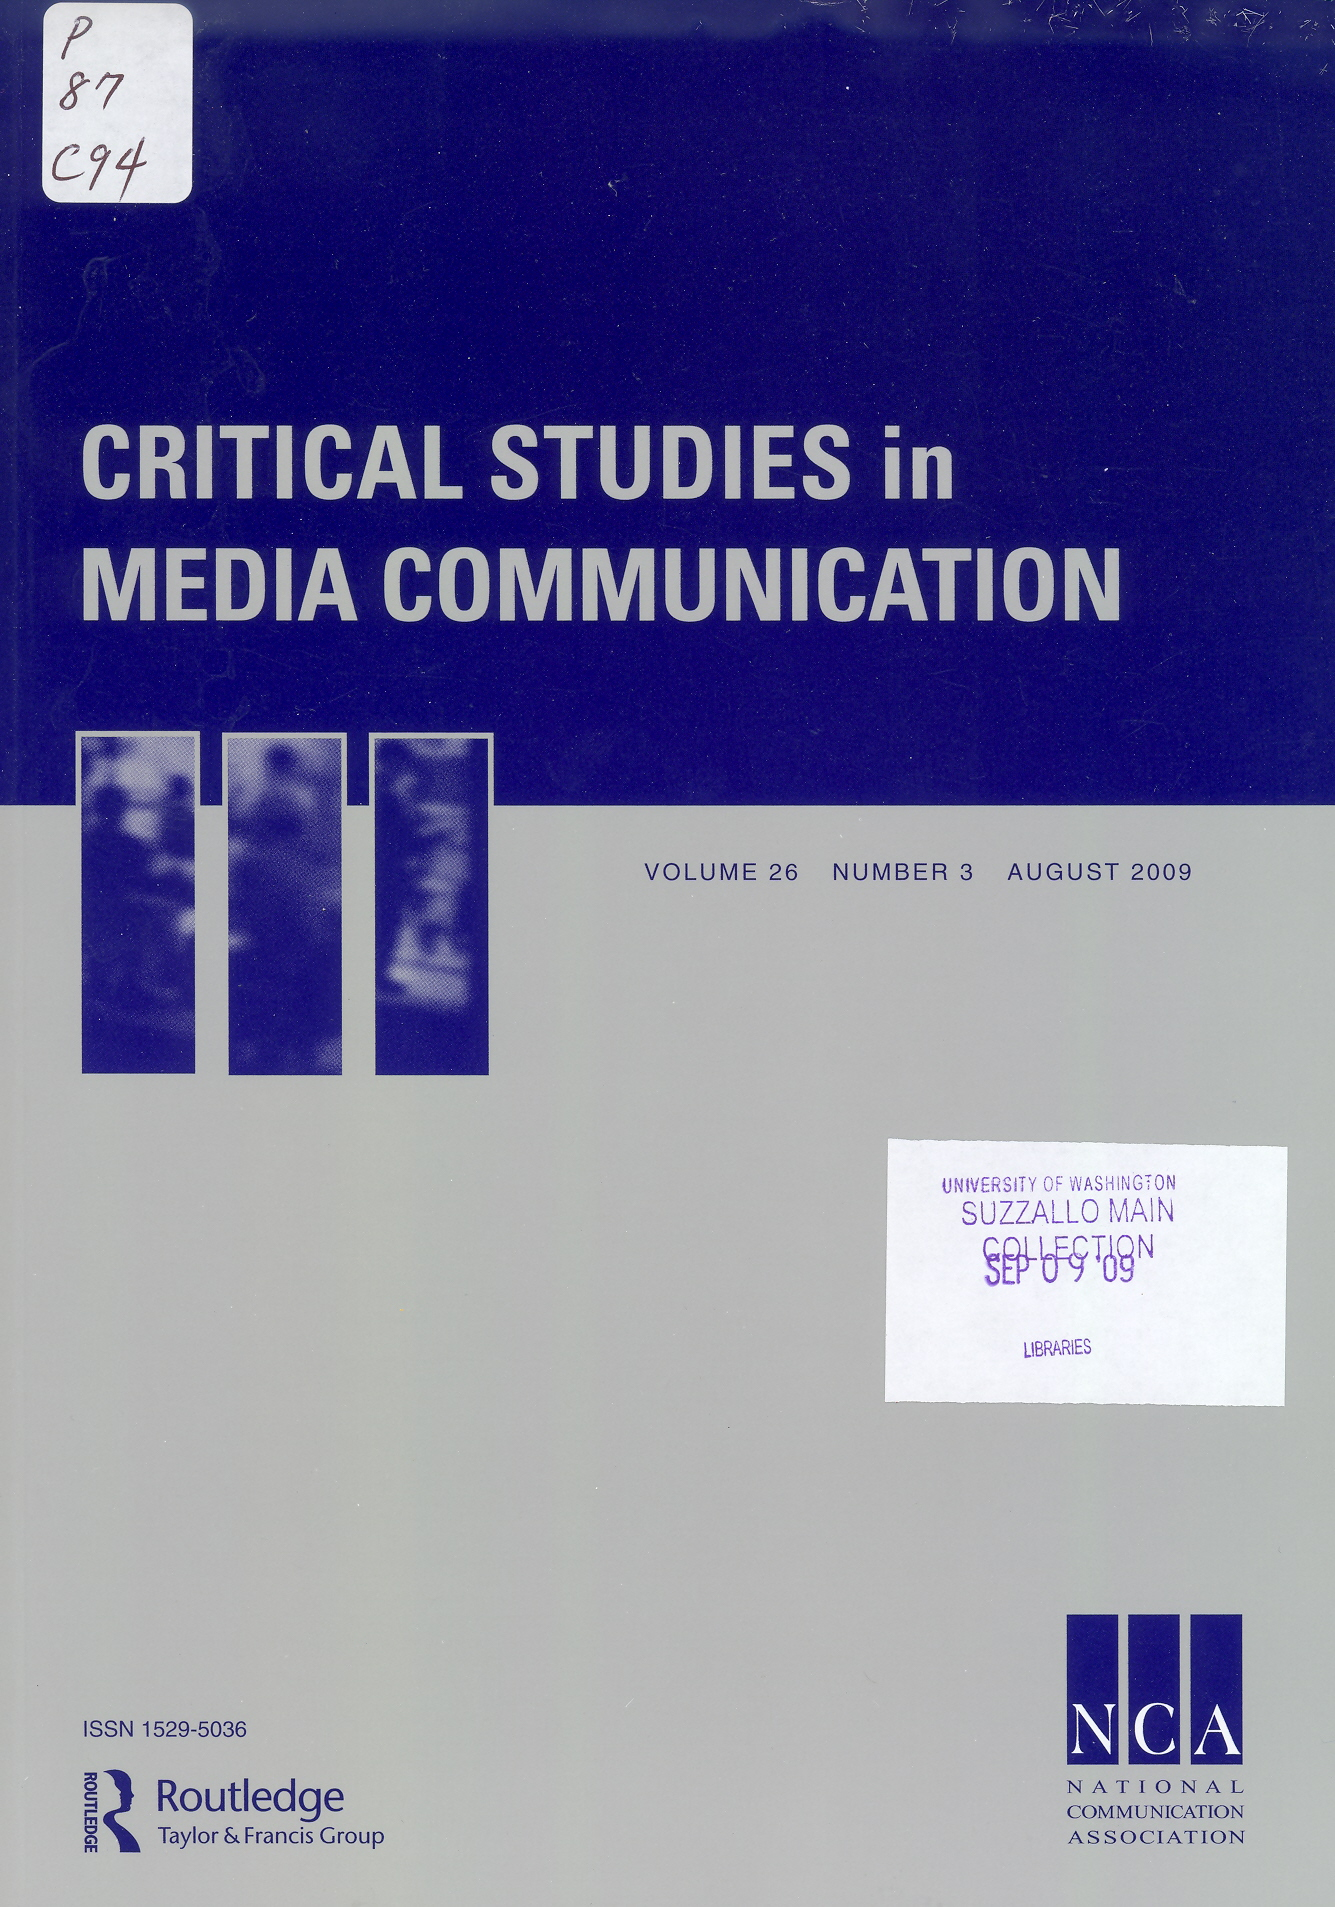 Critical Studies in Media Communication journal cover